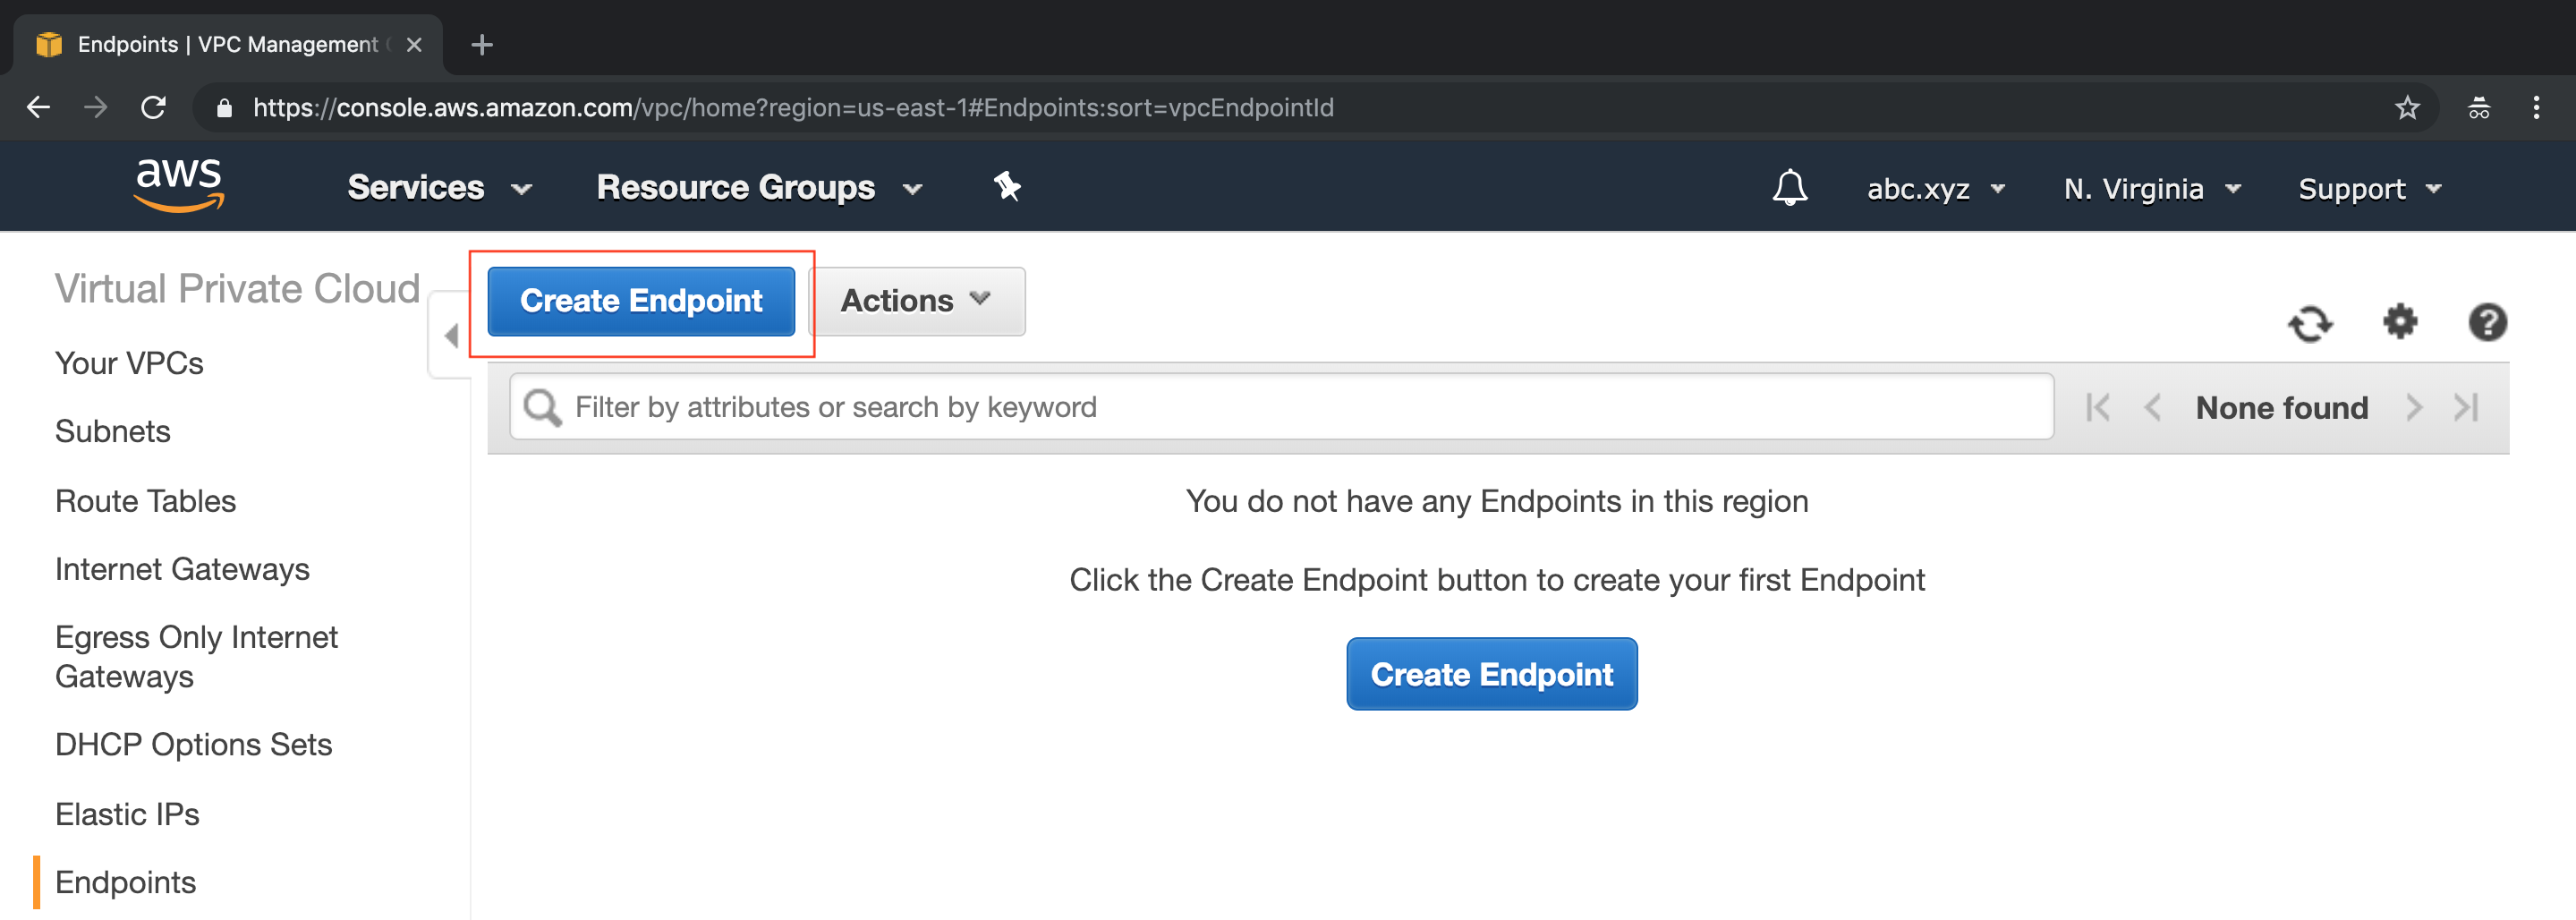 A screen capture showing the Create Endpoint window on the AWS Console